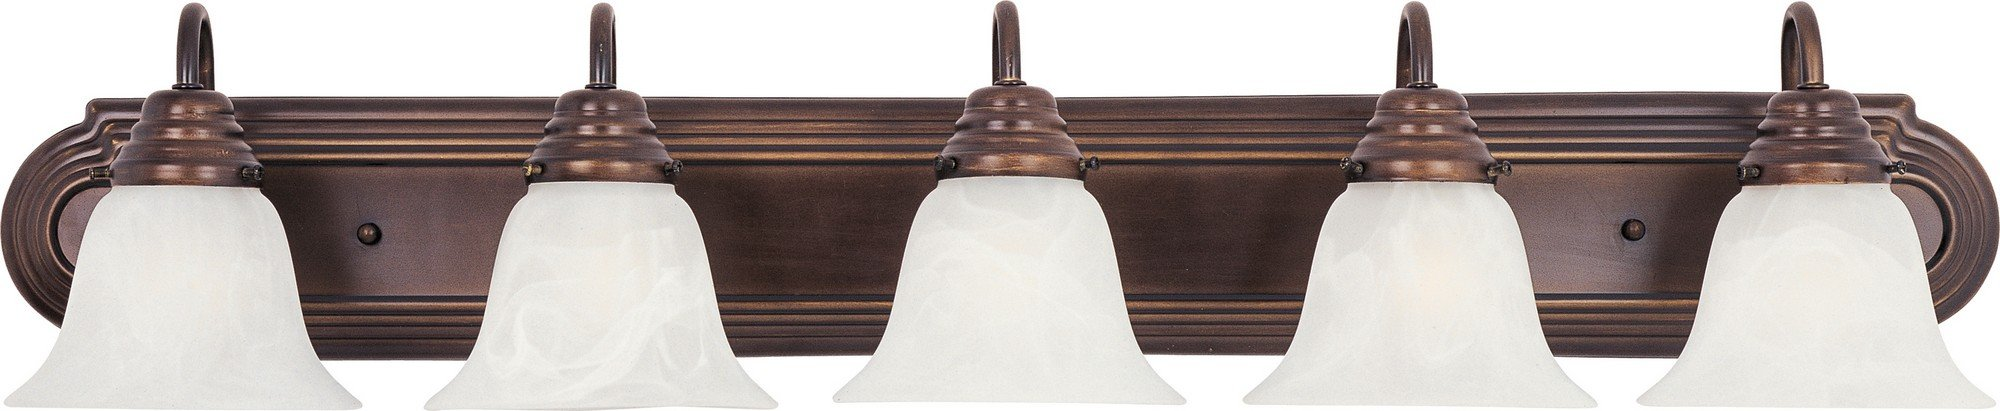 Maxim 8015MROI Essentials 5-Light Bath Vanity, Oil Rubbed Bronze Finish, Marble Glass, MB Incandescent Incandescent Bulb , 12W Max., Wet Safety Rating, 3000K Color Temp, ELV Dimmable, Opal Glass Shade Material, 840 Rated Lumens